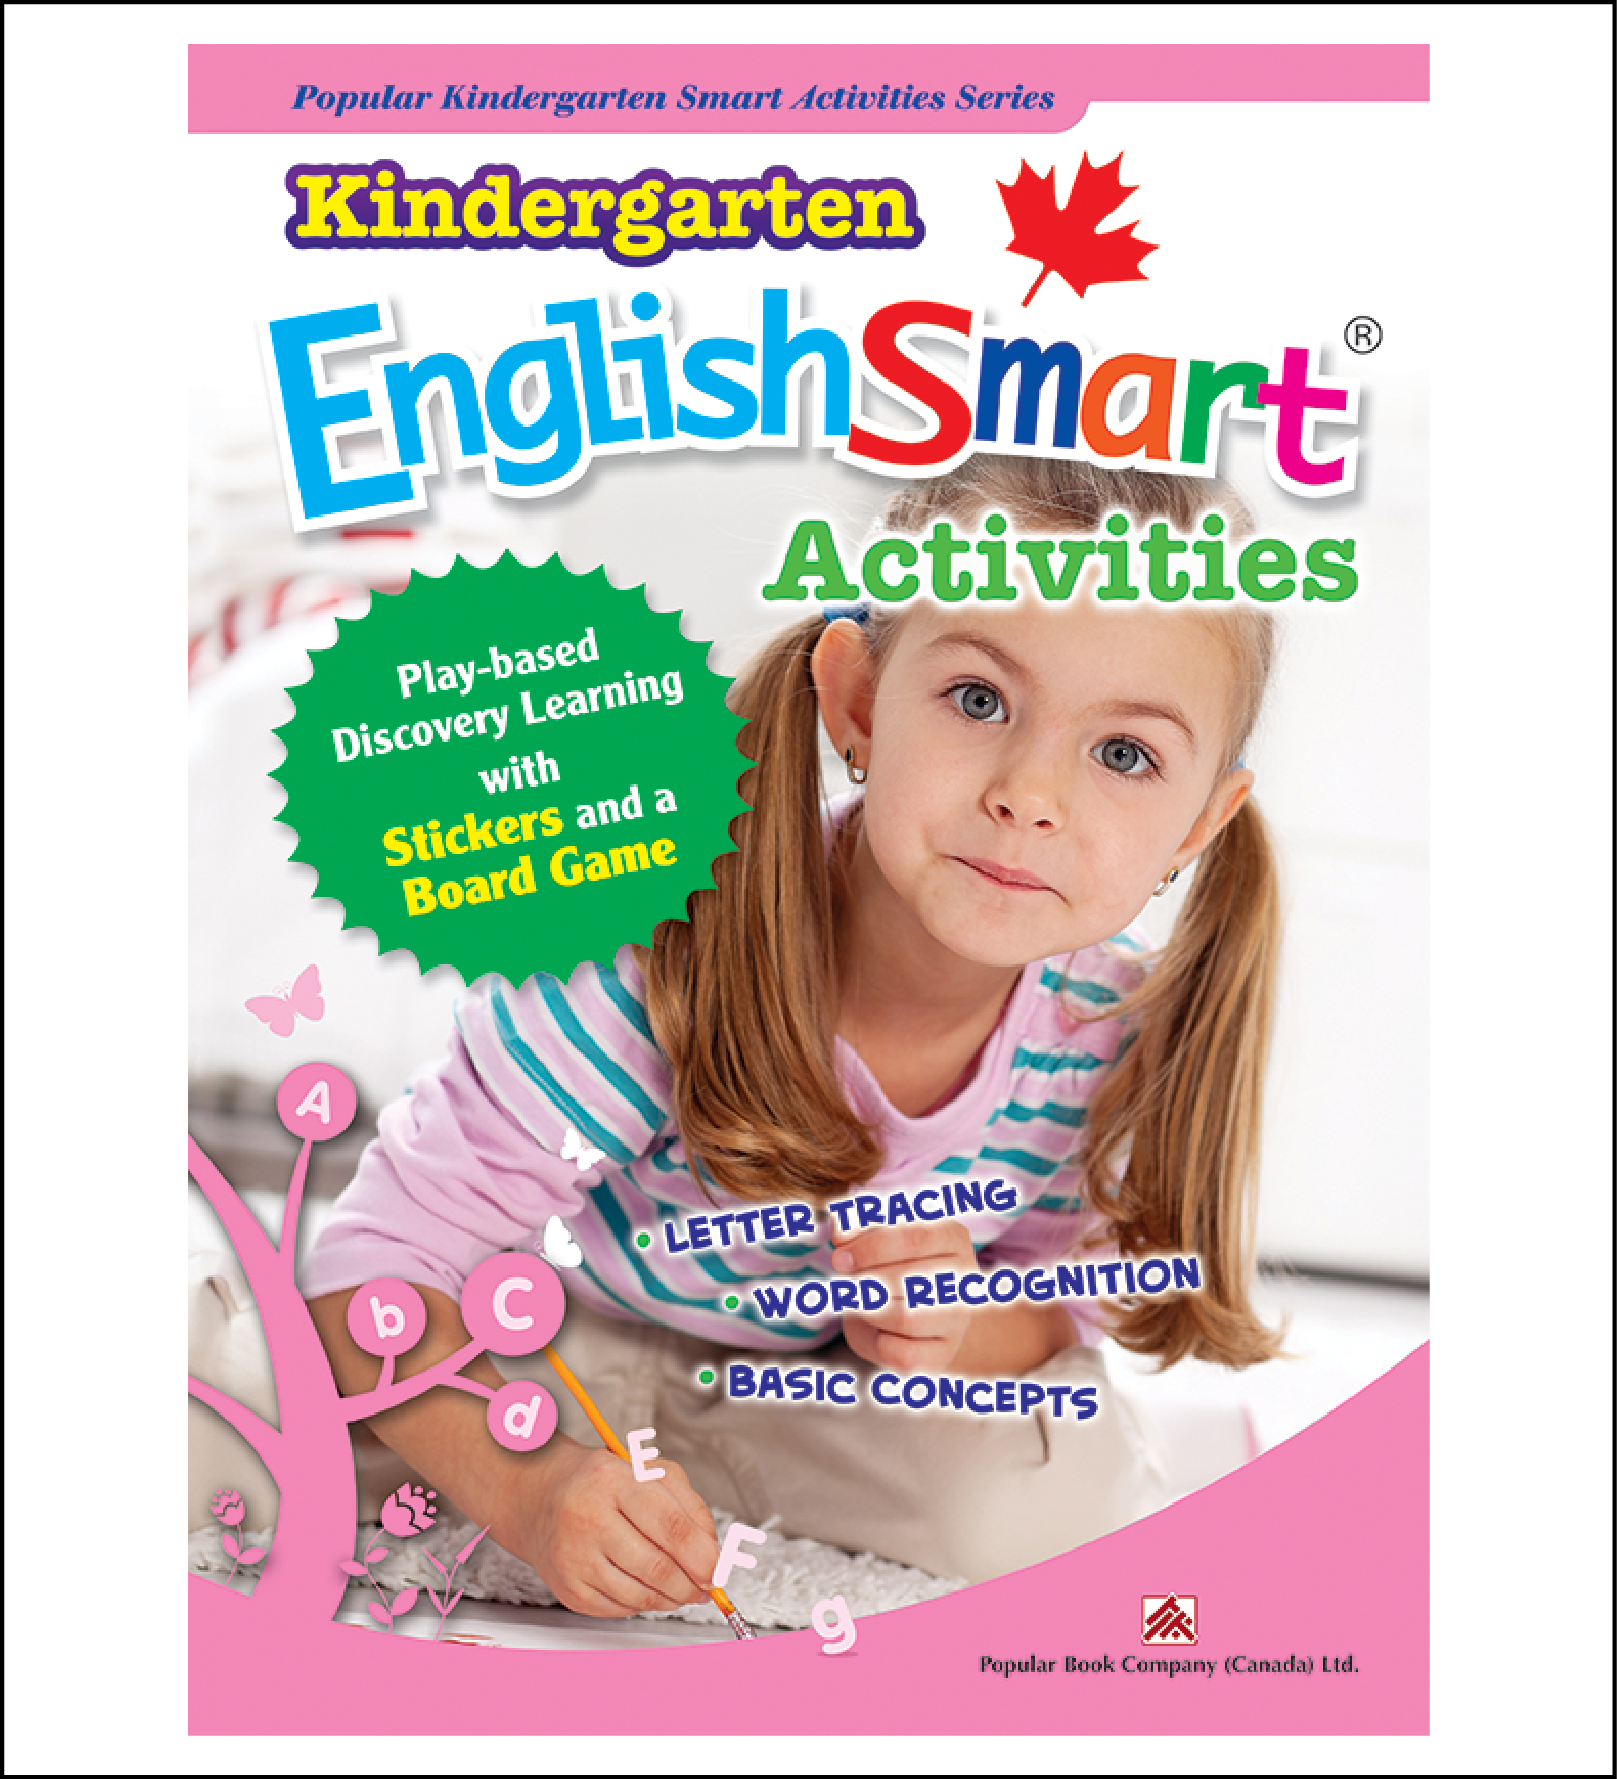 Activtiy book for kids Kindergarten EnglishSmart Activities